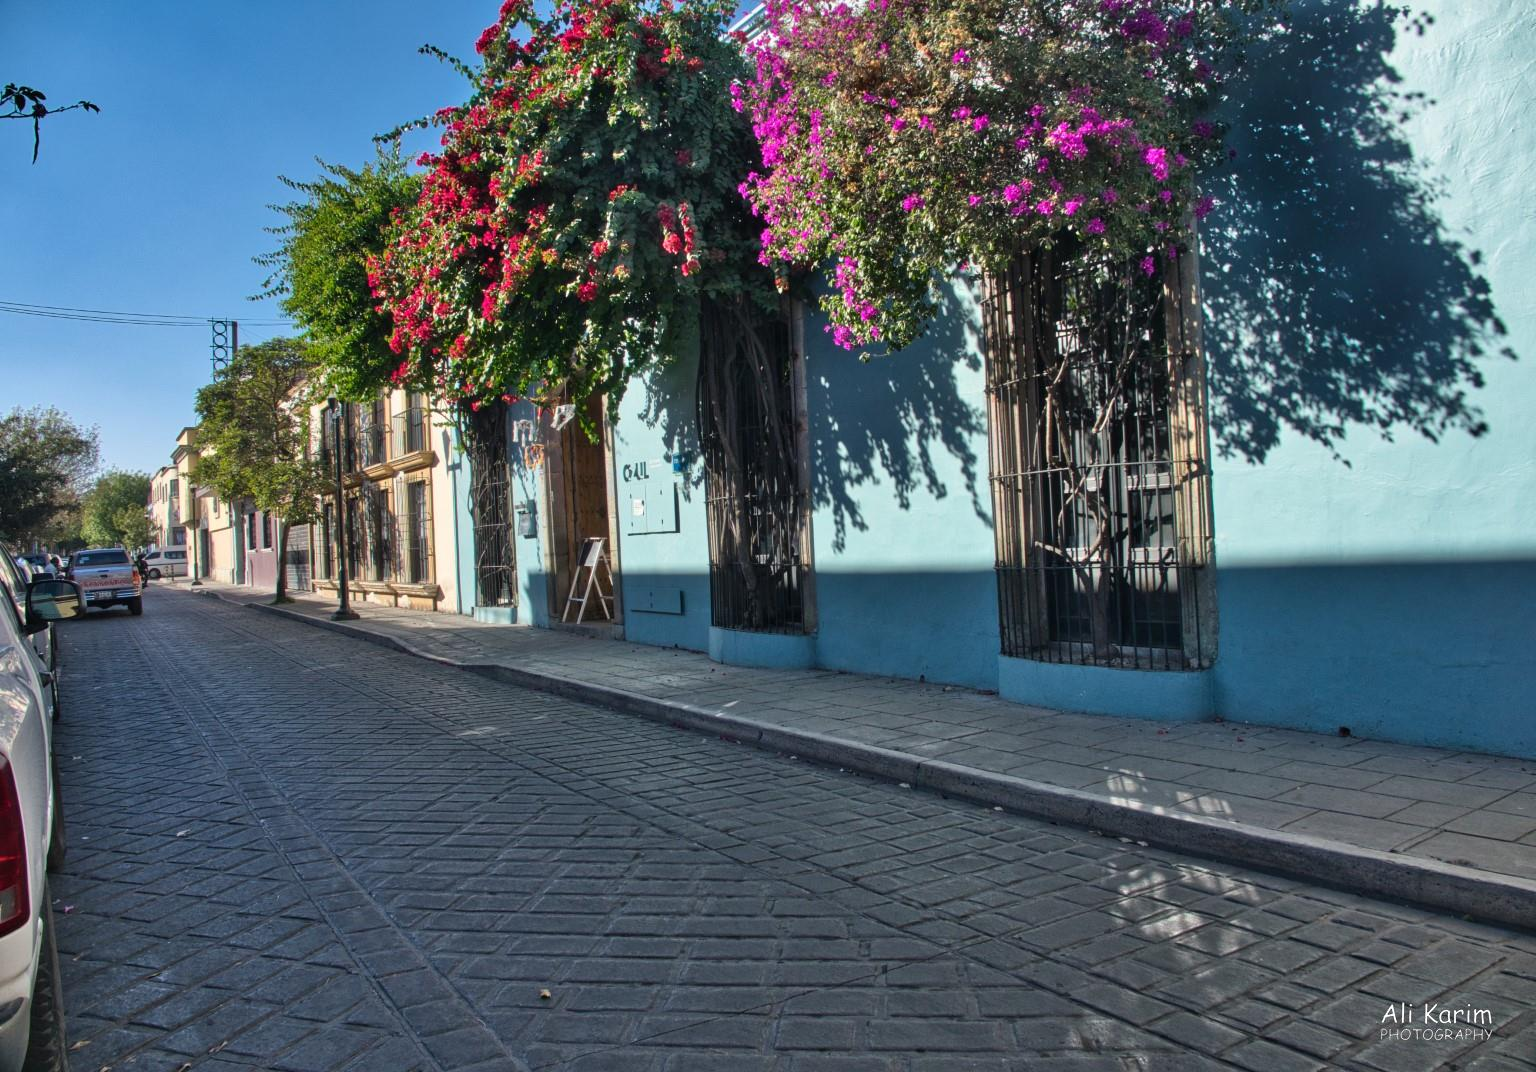 Oaxaca, Mexico Clean streets and sidewalks, with colorful bougainvillea's